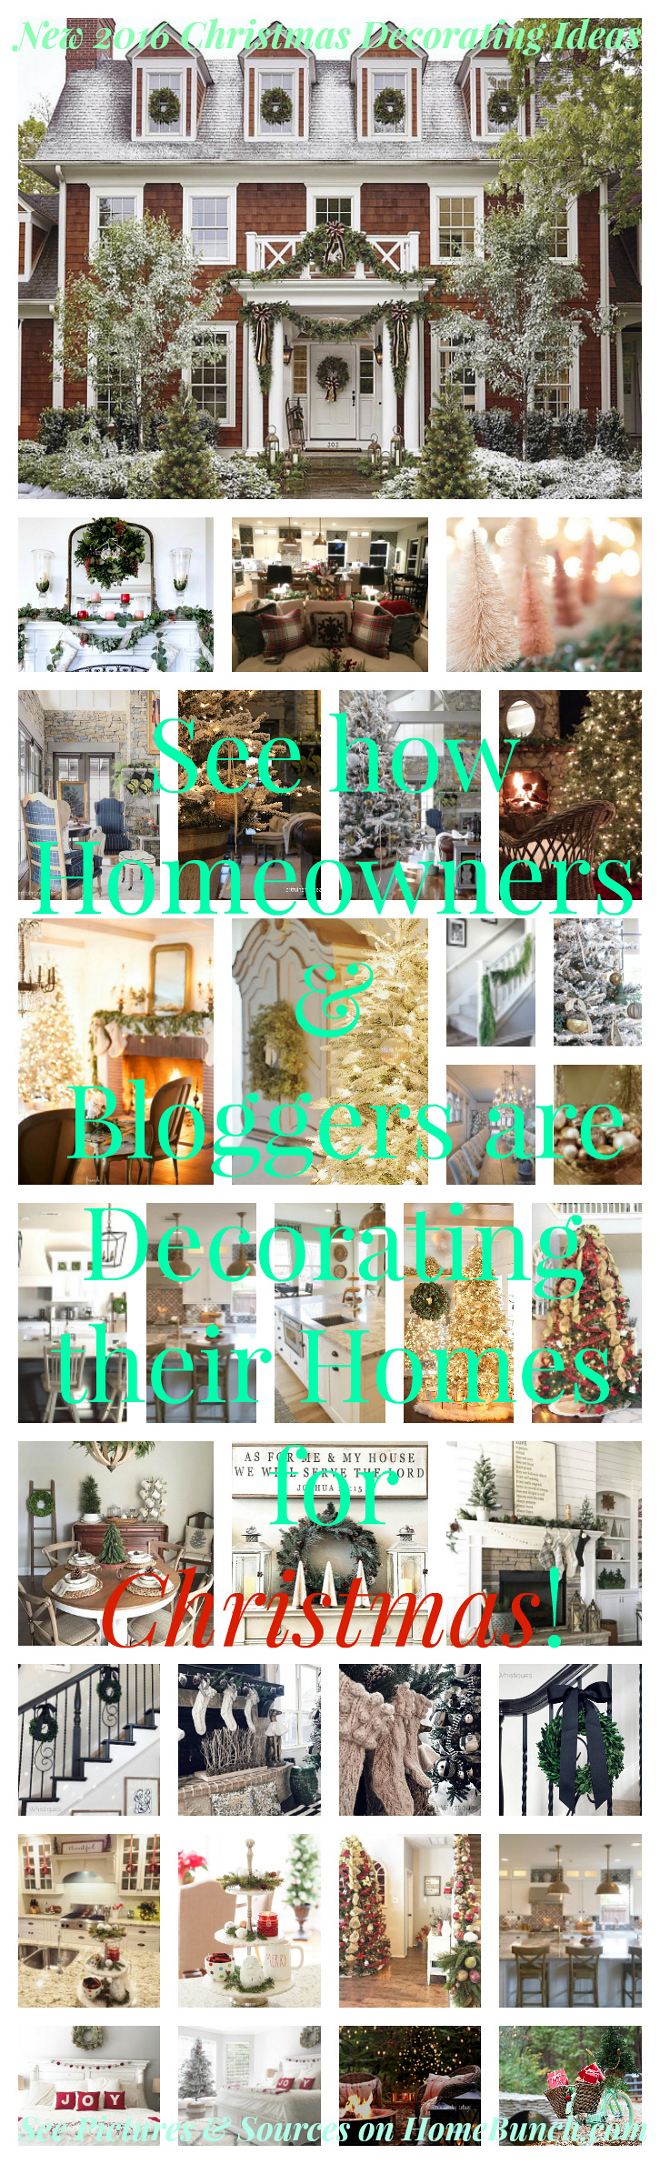 .New 2016 Christmas Decorating Ideas. New 2016 Christmas Decorating Ideas from homeowners, bloggers and from instagram. New 2016 Christmas Decorating Ideas #New2016ChristmasDecoratingIdeas #2016ChristmasDecoratingIdeas #NewChristmasDecoratingIdeas #ChristmasDecoratingIdeas #ChristmasDecoratingIdeas #ChristmasDecor #ChristmasDecorIdeas